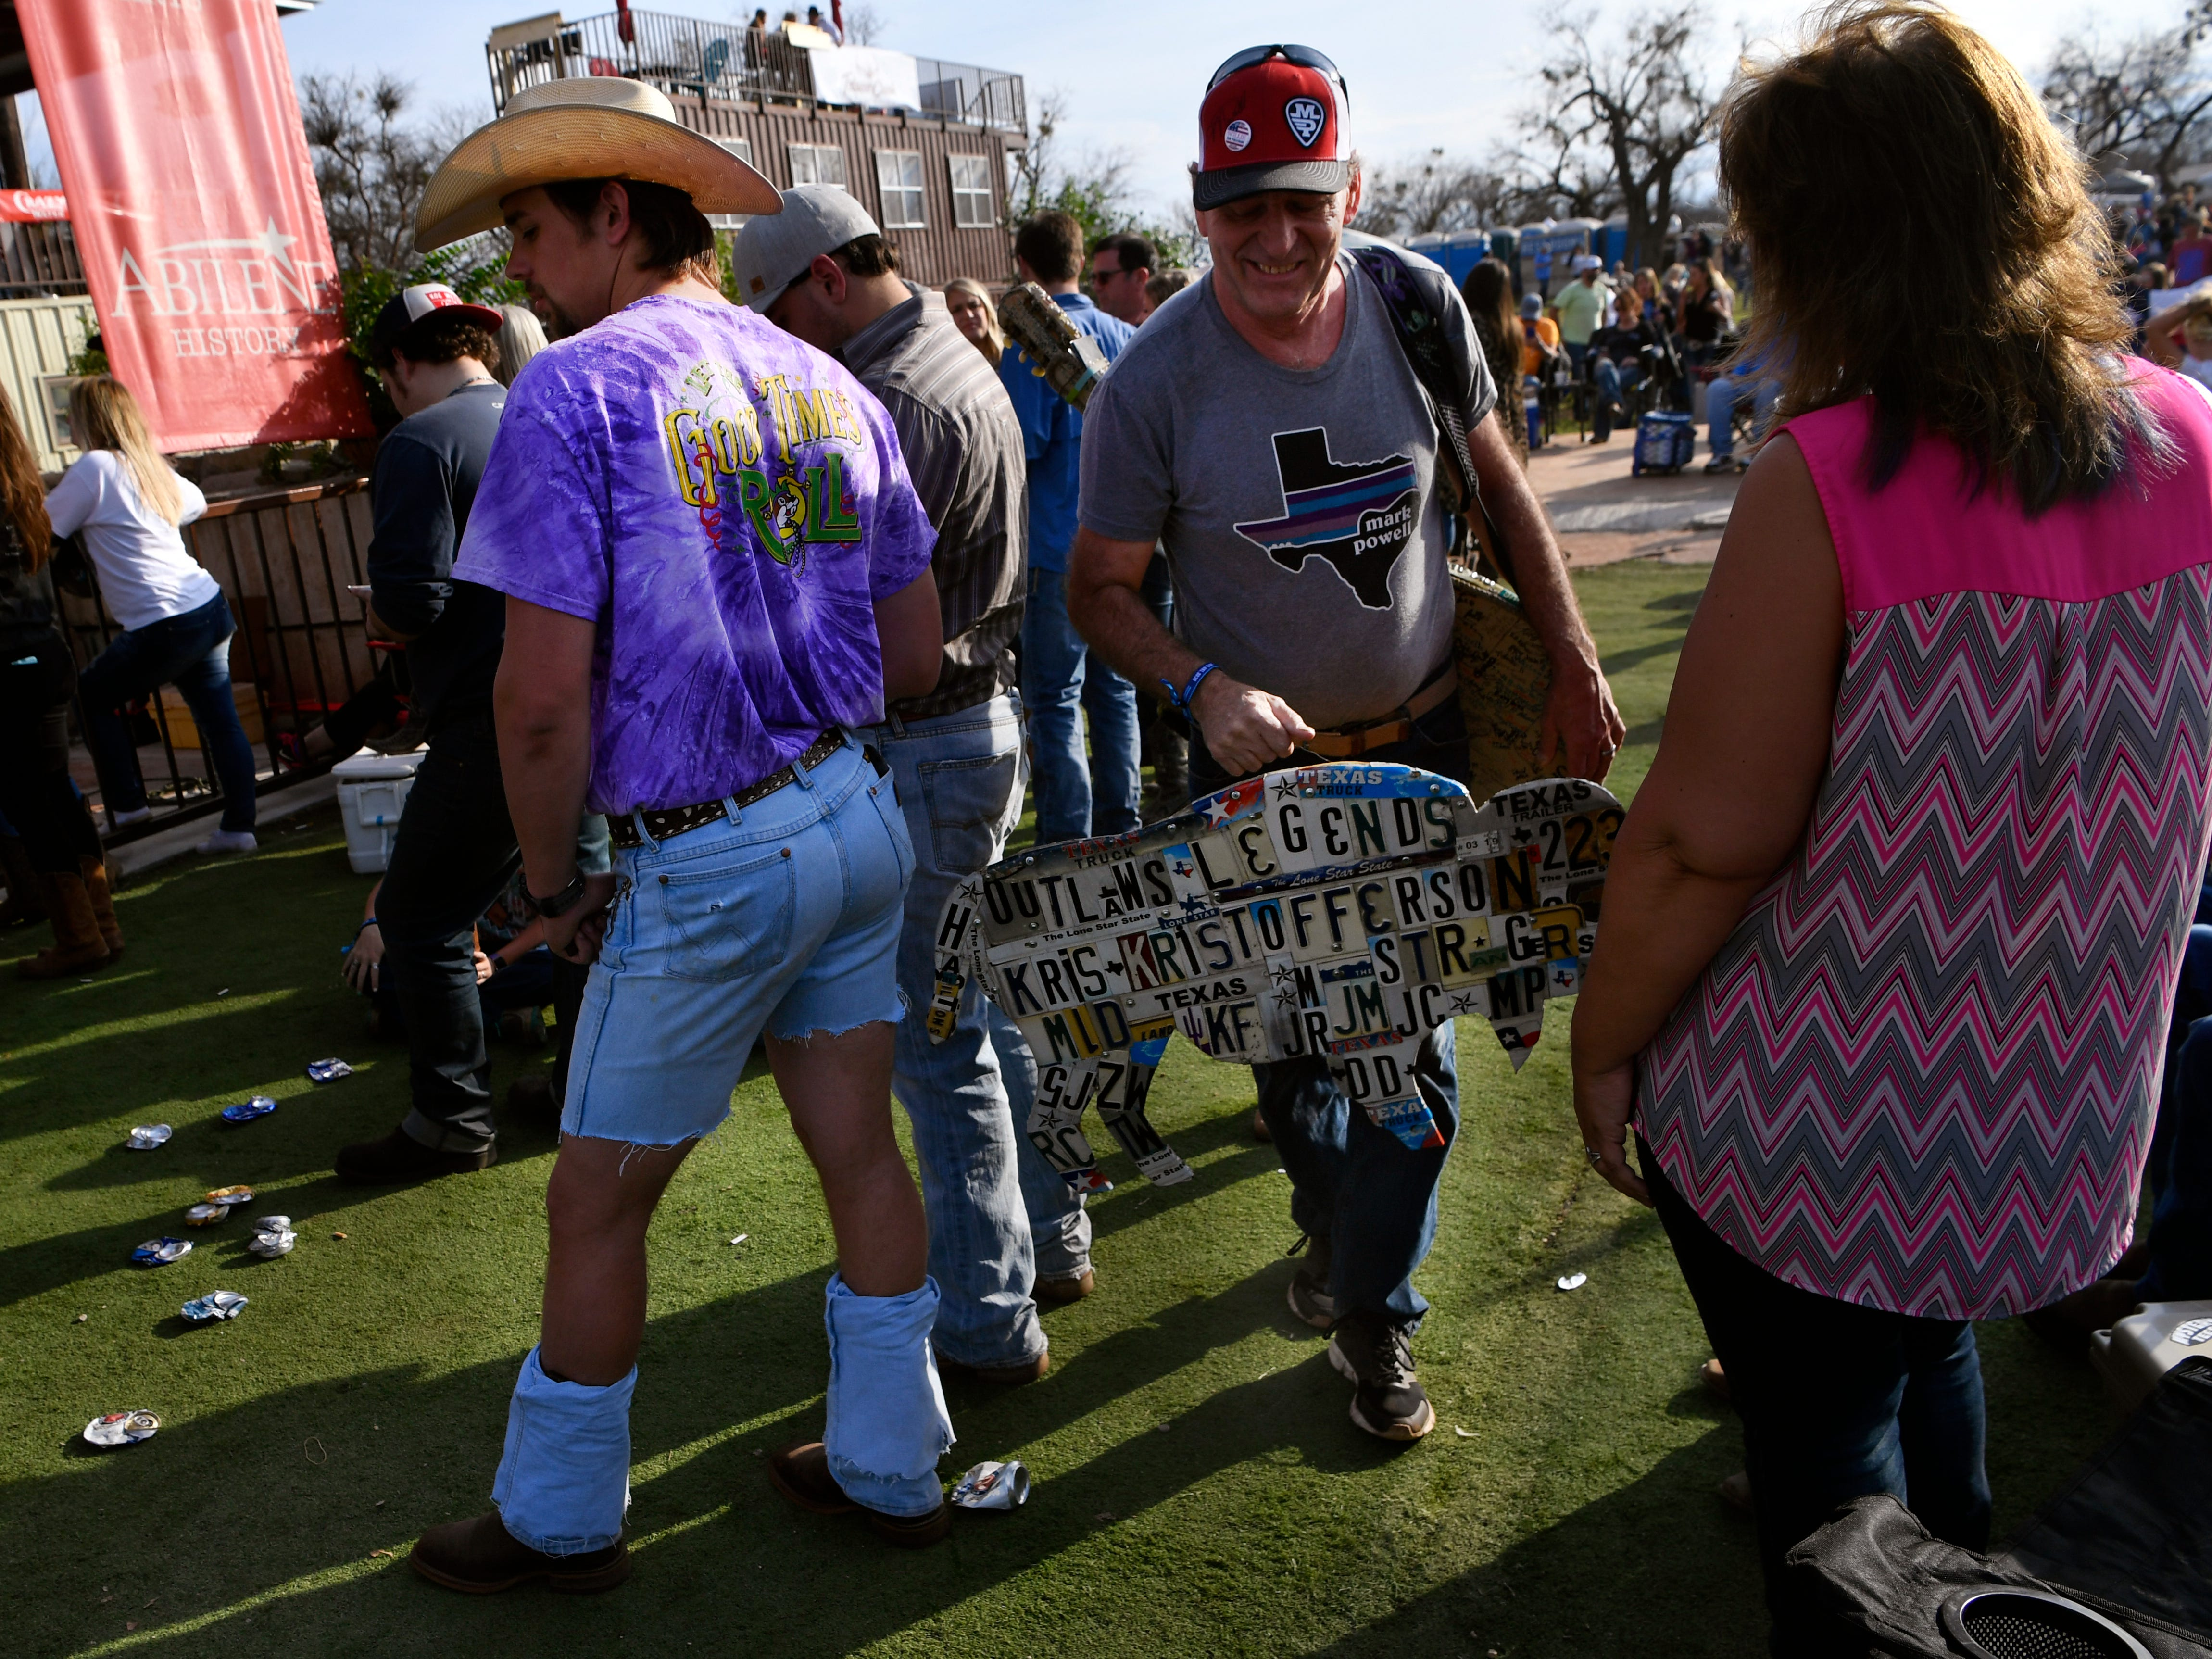 Dennis Gross carries his custom artwork he made for the festival made through the crowd at the Outlaws & Legends music festival Friday March 22, 2019. Gross cut a buffalo shape in wood and then used old license plates to spell the names of this year's performers.